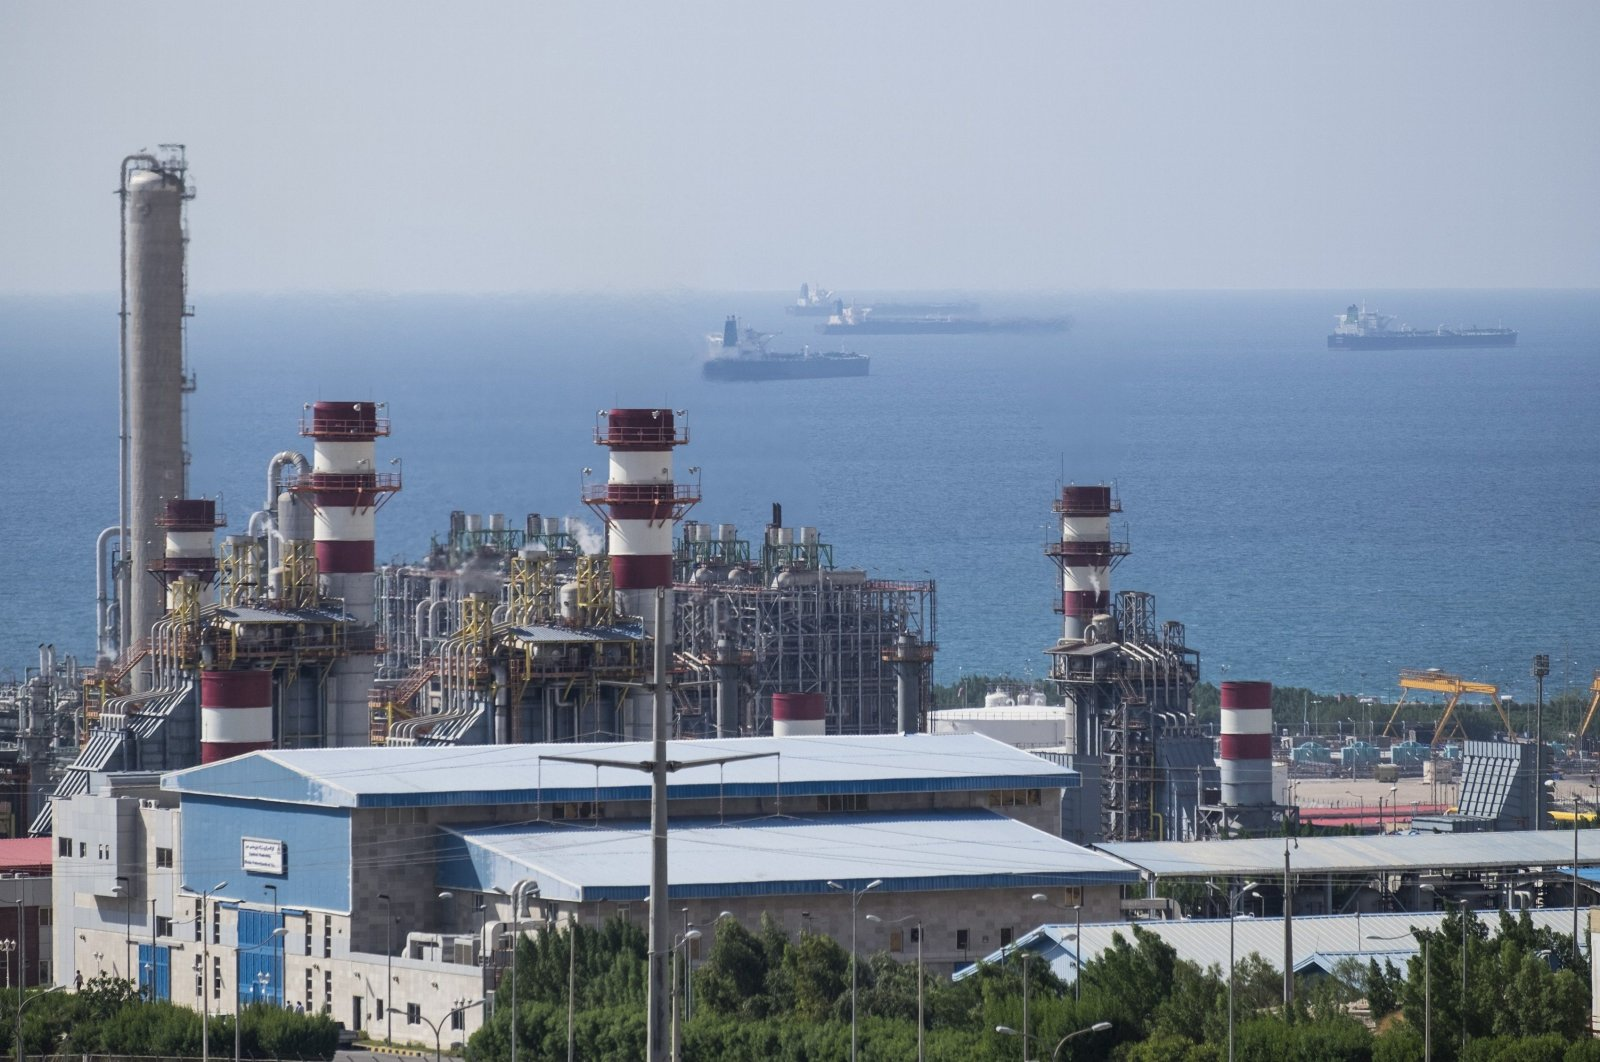 A general view shows a unit of South Pars Gas field in Asalouyeh Seaport, north of Persian Gulf, Iran, Nov. 19, 2015. (Reuters File Photo)